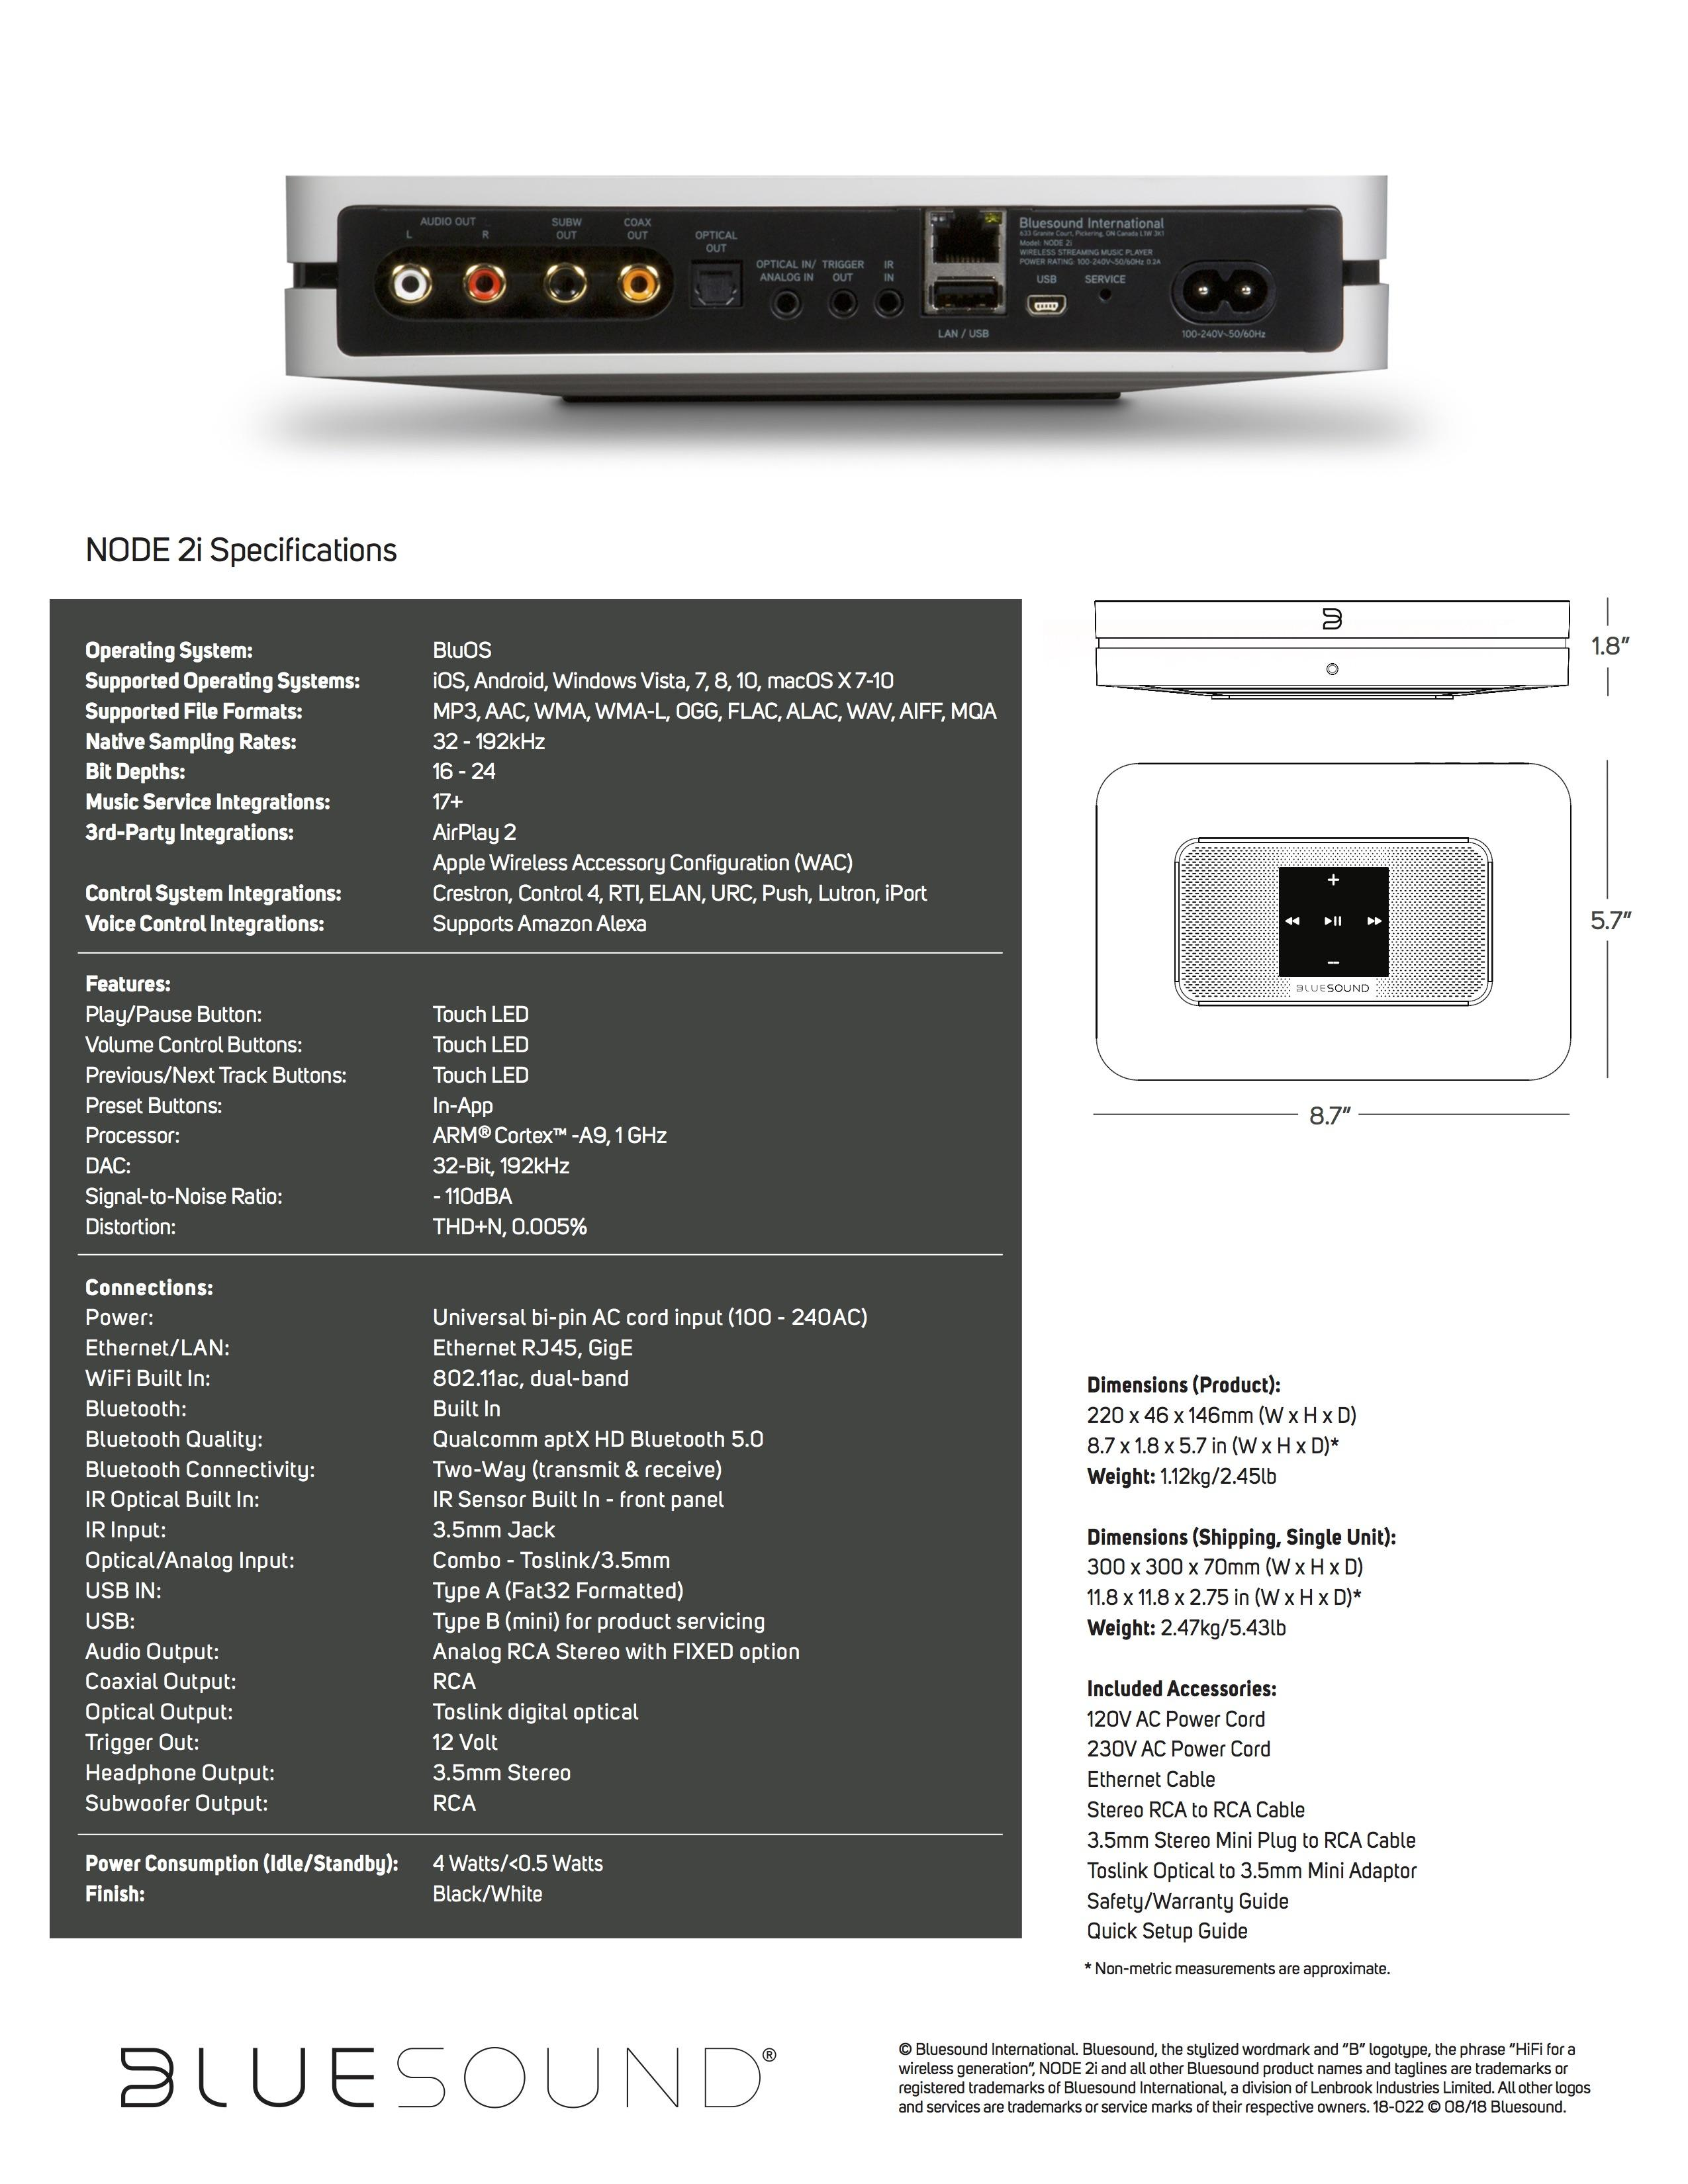 Bluesound Node 2i Hi-Res Music Streamer